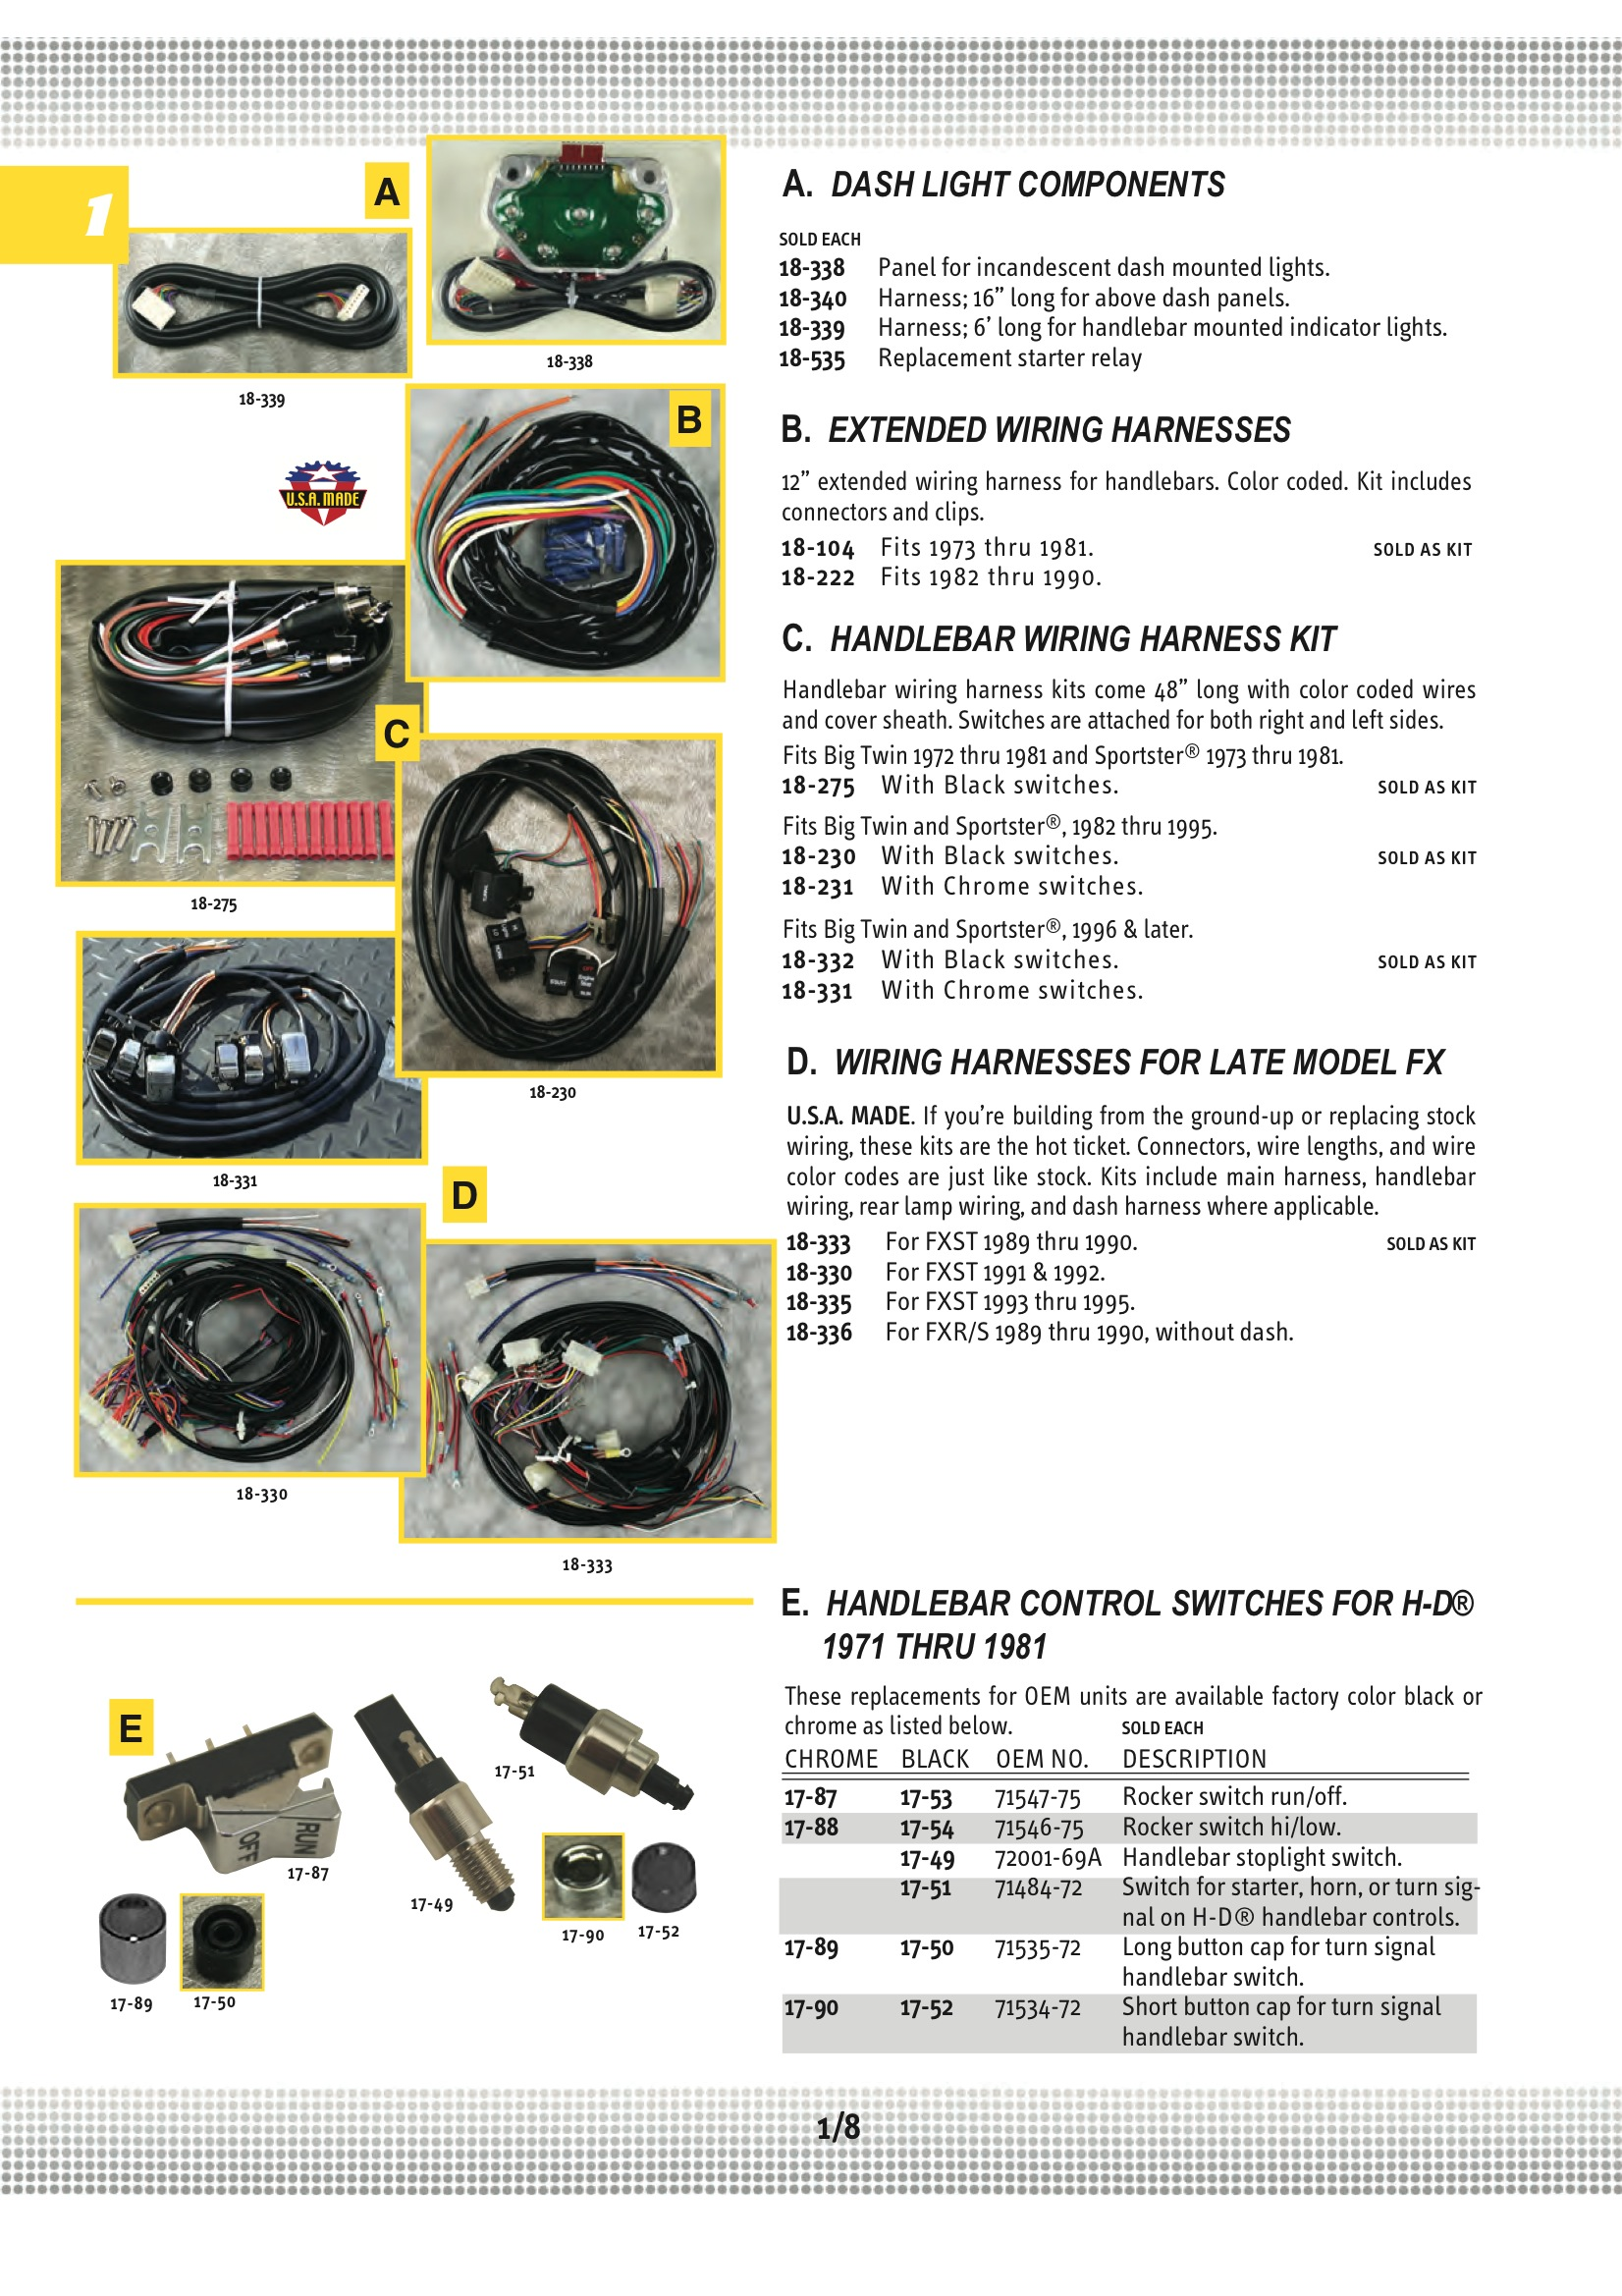 johnson ultima switch wiring diagram johnson image johnson wiring harness diagram all about repair and wiring on johnson ultima switch wiring diagram